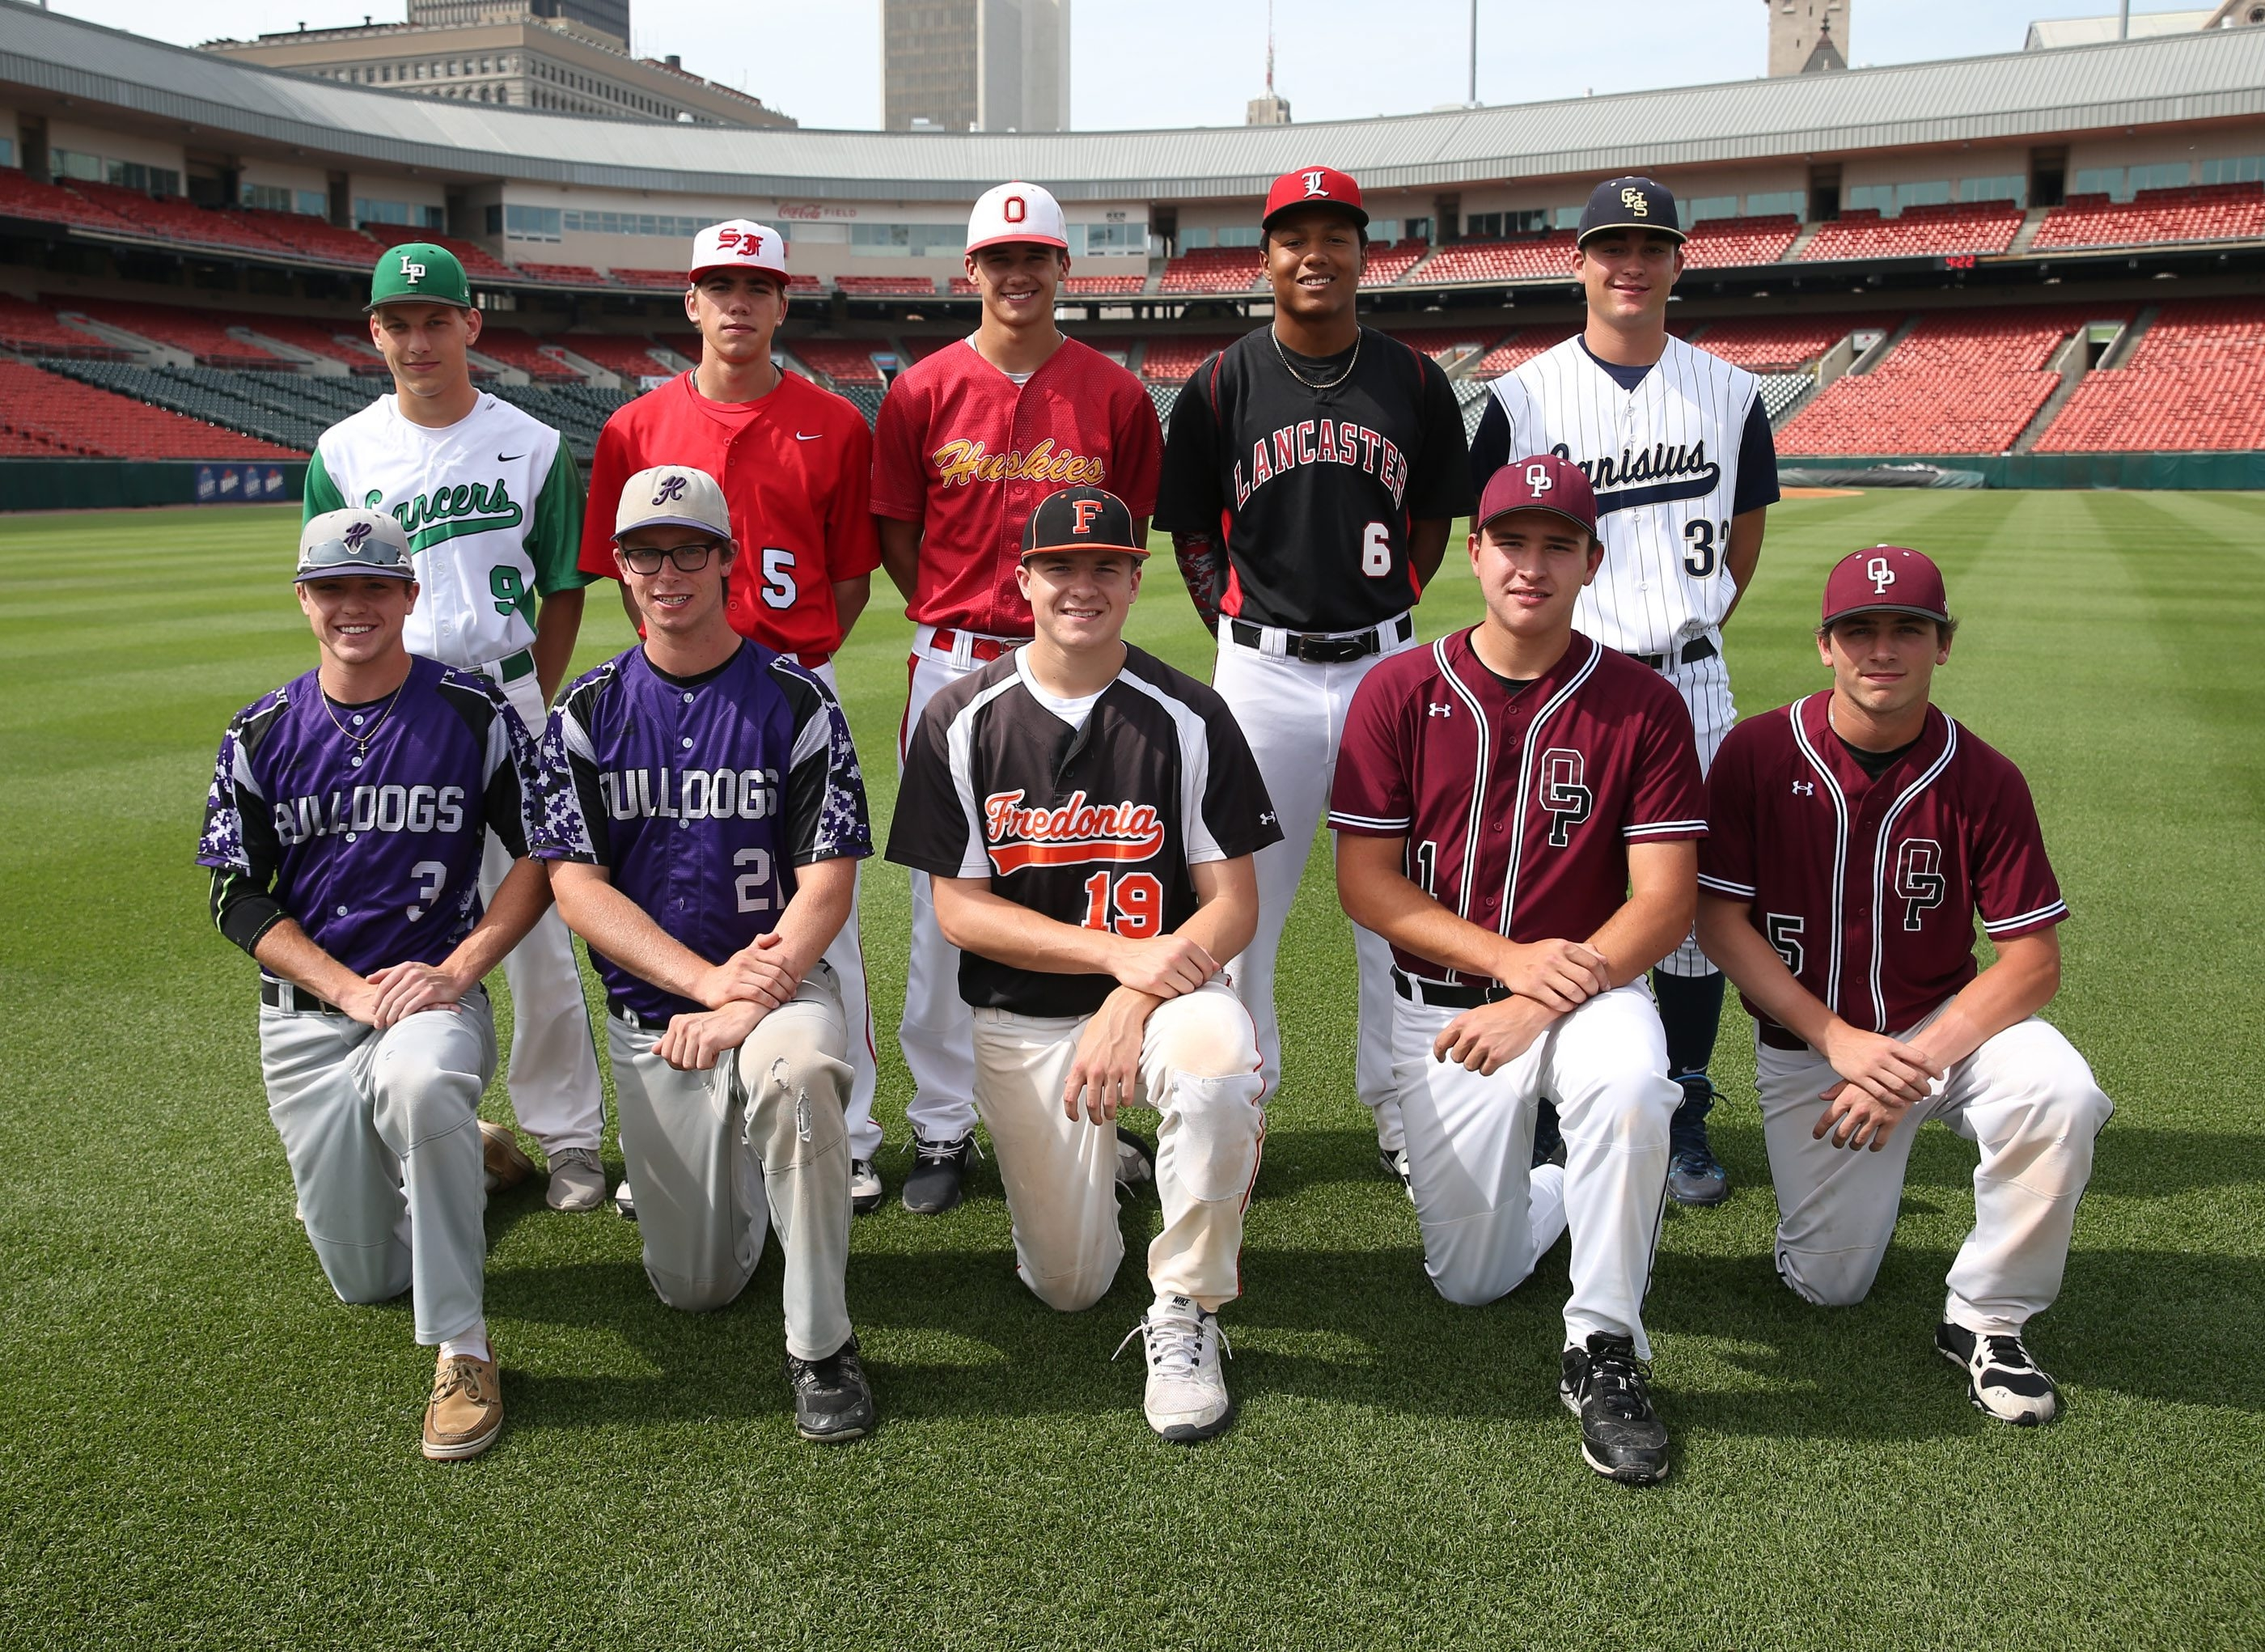 The 2015 All-Western New York team. Front row: Cameron Ringo (Hamburg), David Edie (Hamburg), Cameron Voss (Fredonia), Andrew Sipowicz (Orchard Park), Brandon Nicholson (Orchard Park).  Back row: Dawson Bailey (Lewiston-Porter), Jacob Victor (St. Francis), Evan Threehouse (Olean), Leugim Castillo (Lancaster) and Dan Dallas (Canisius). Not pictured: Nick Hamilton (Lockport).